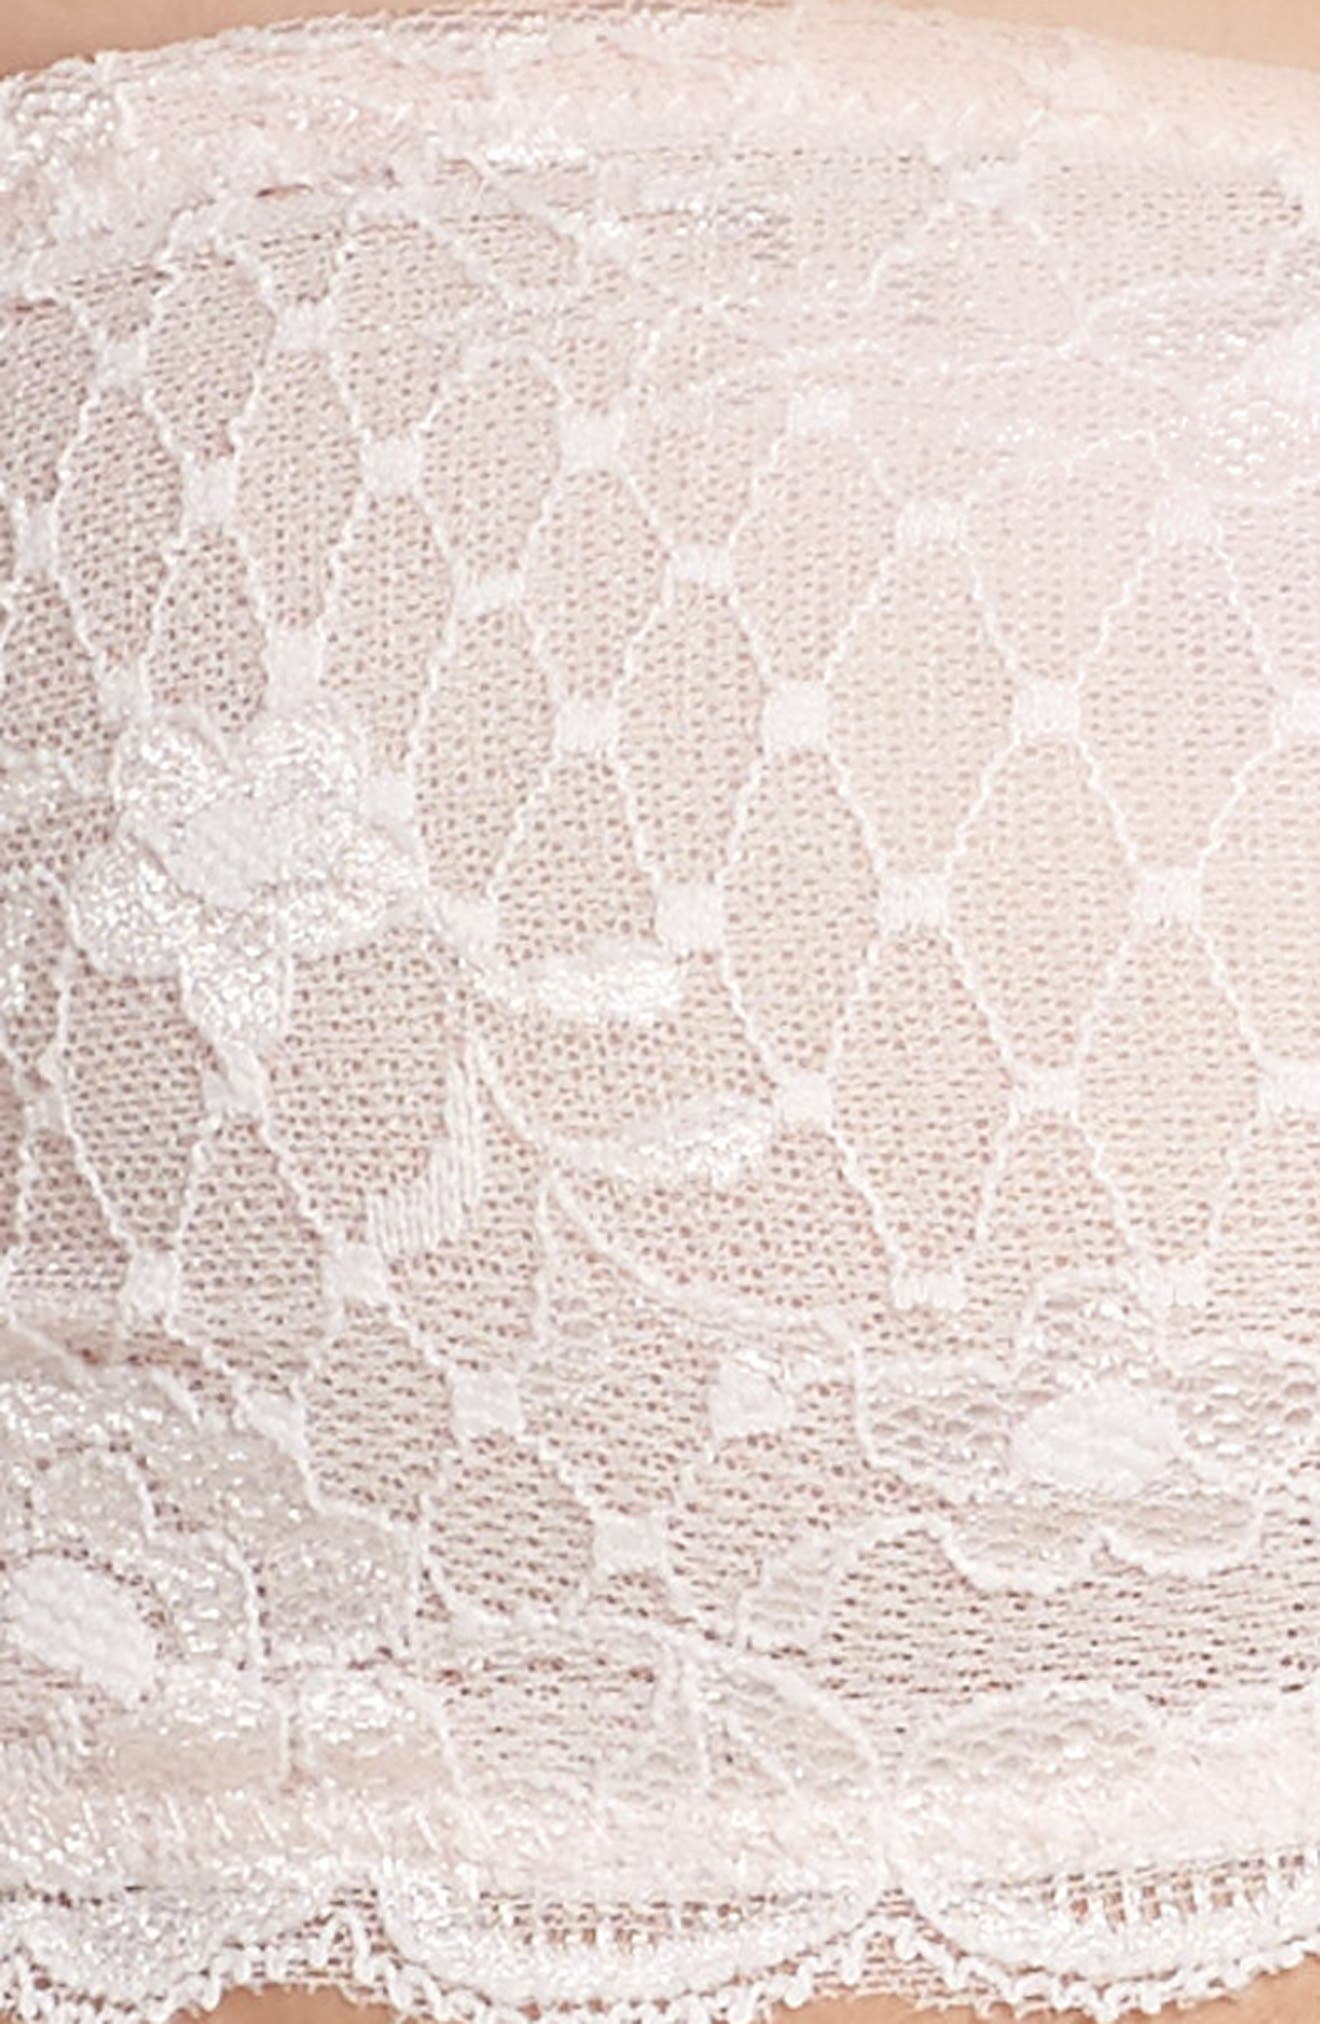 Intimately FP Lace Bandeau,                             Alternate thumbnail 99, color,